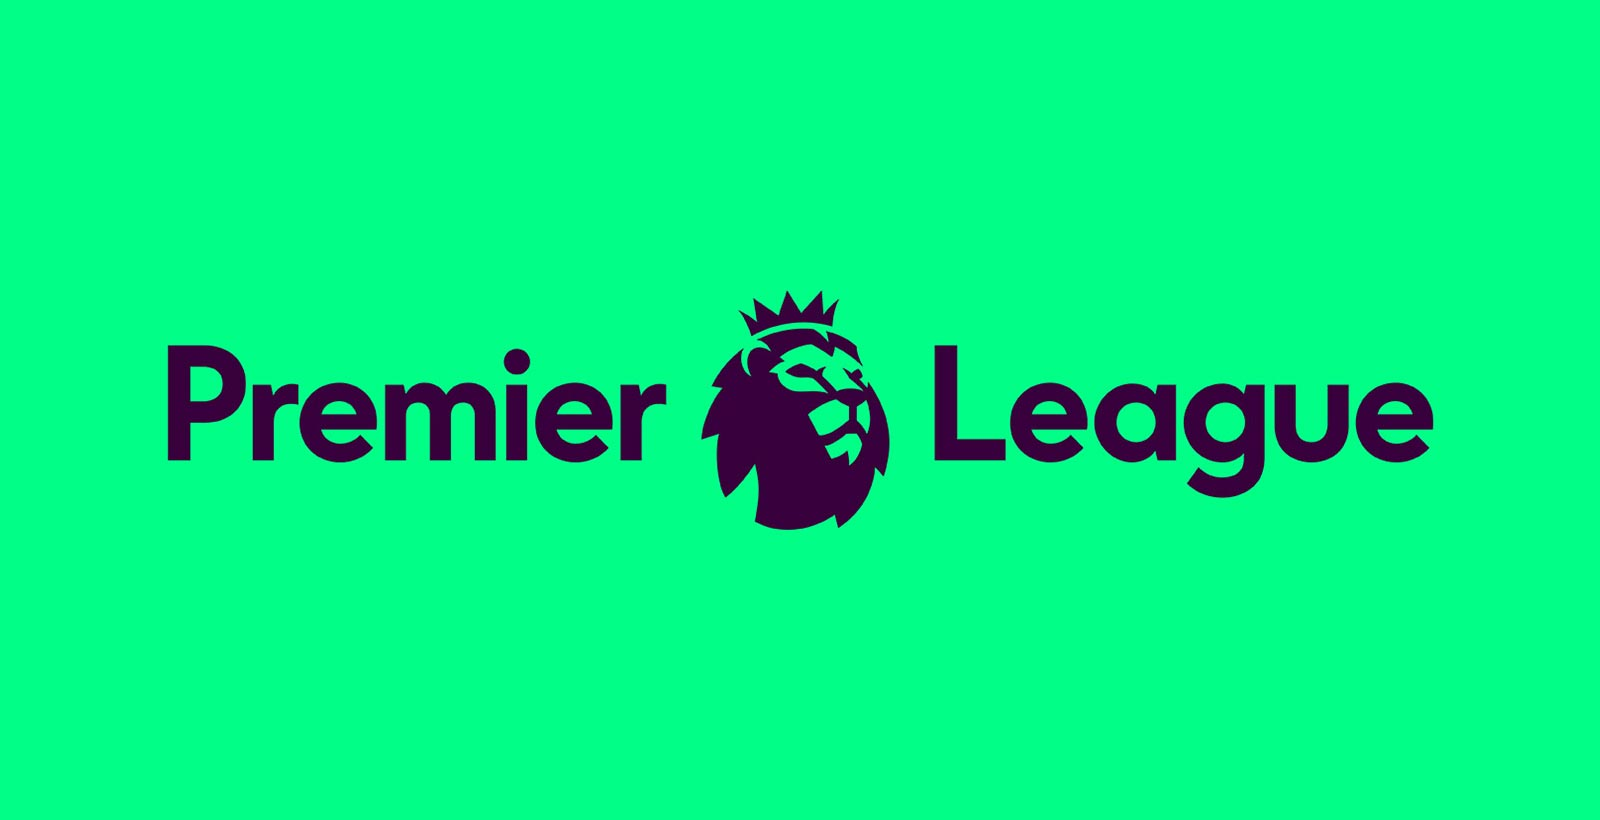 new-premier-league-logo-2016-17-9.jpg